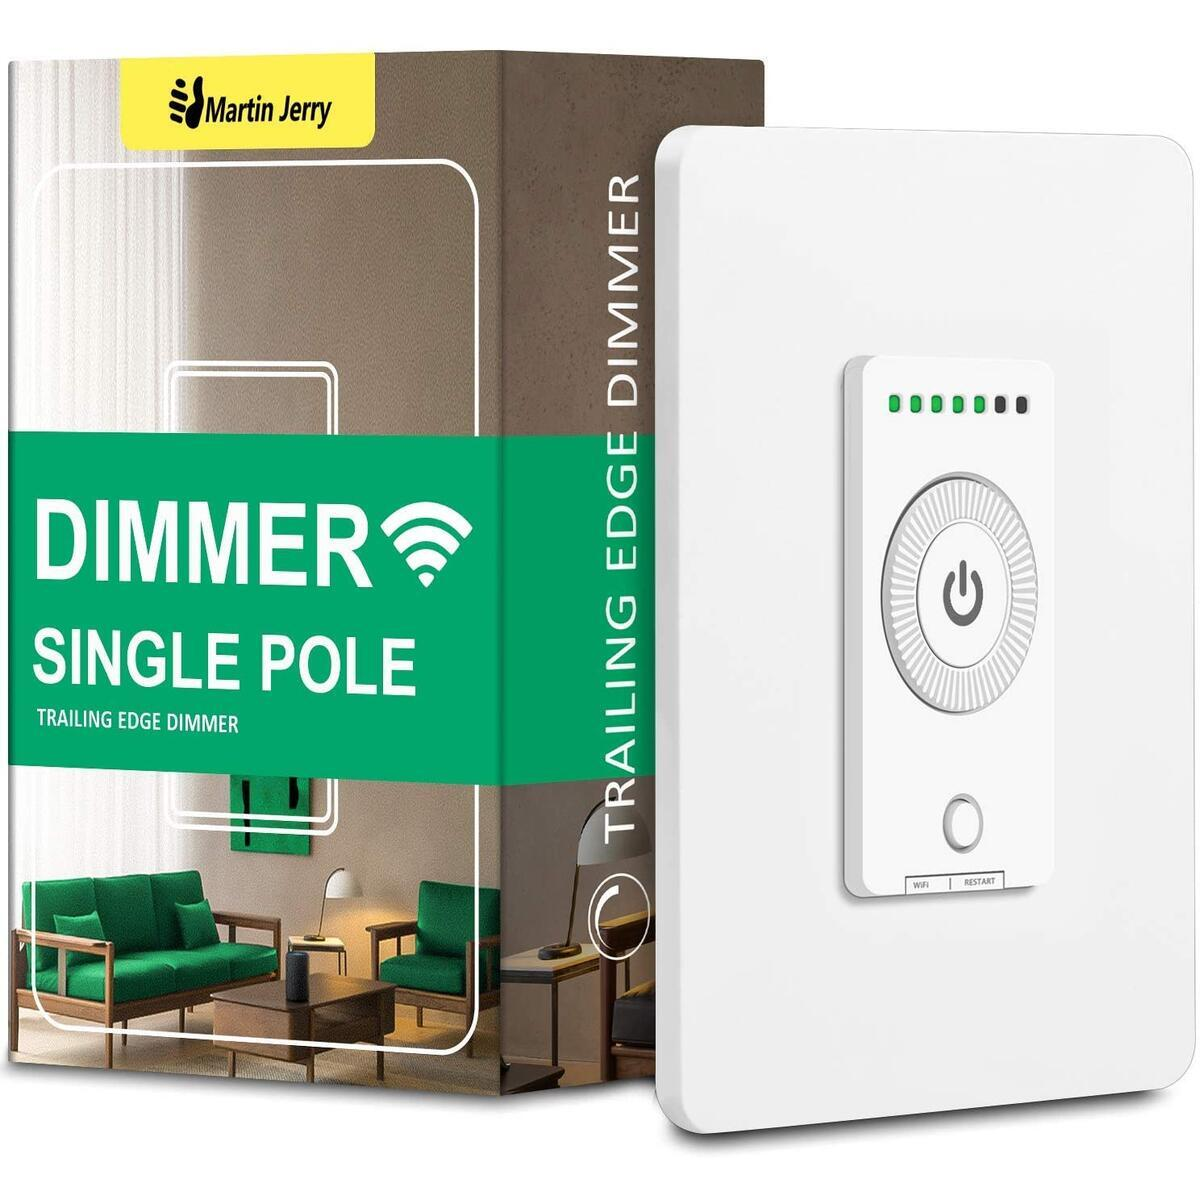 2020 New Smart Dimmer Switch (Rotary Dimmer) | Trailing Edge Dimmer